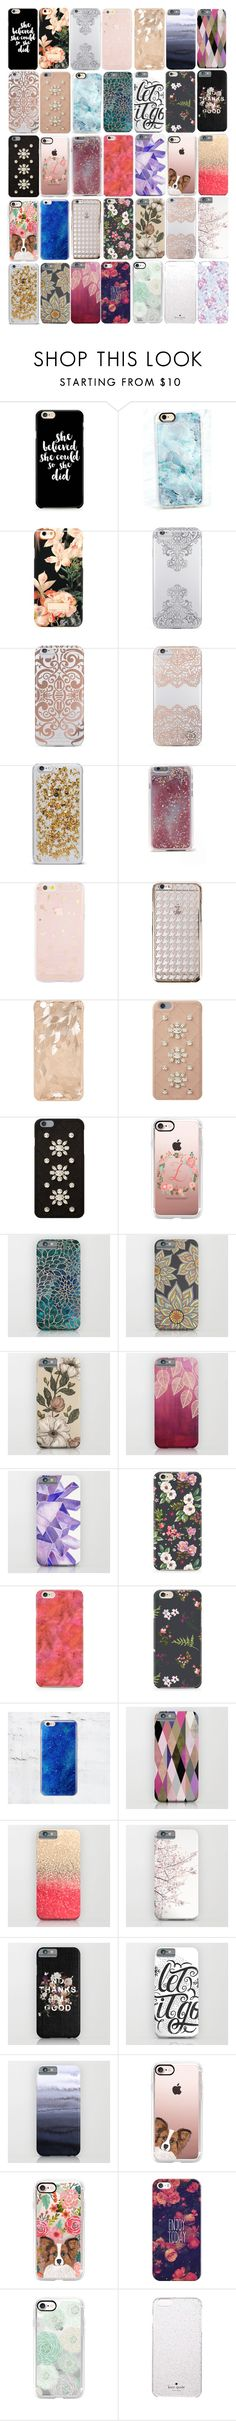 """""""Lydia Inspired IPhone 6S/6S Plus Cases"""" by veterization ❤ liked on Polyvore featuring Casetify, Ted Baker, Nanette Lepore, Agent 18, Sonix, CYLO, MICHAEL Michael Kors and Kate Spade"""